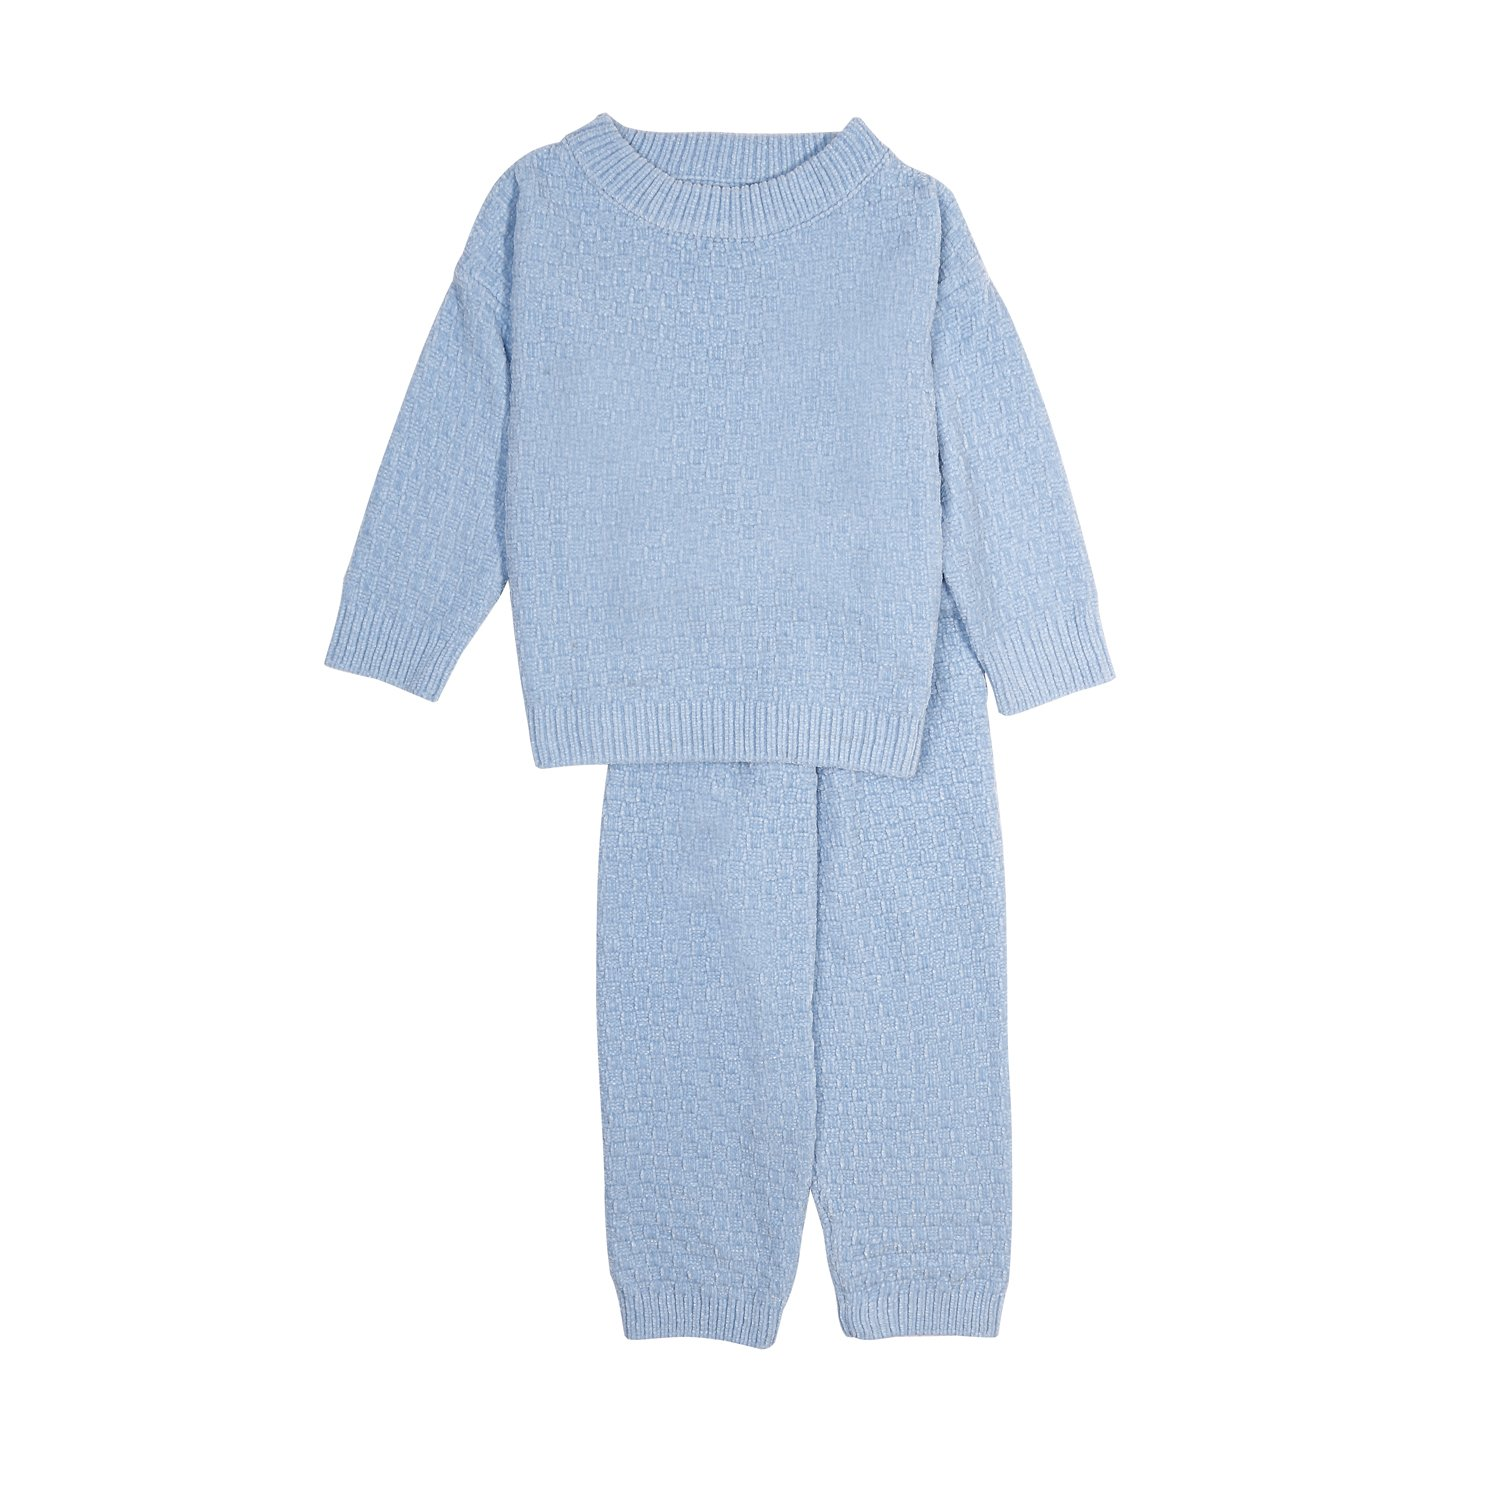 Baosdooya Childrens Home Wear and Knitted Chenille Long Sleeve Tops and Long Pants with Round Neck Winter Sleeping Clothes